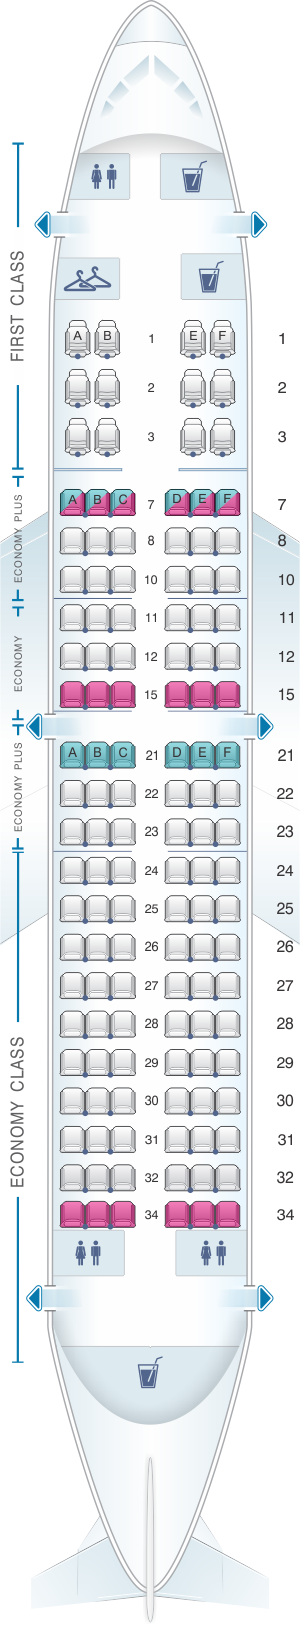 Seat map for United Airlines Boeing B737 700 - version 2